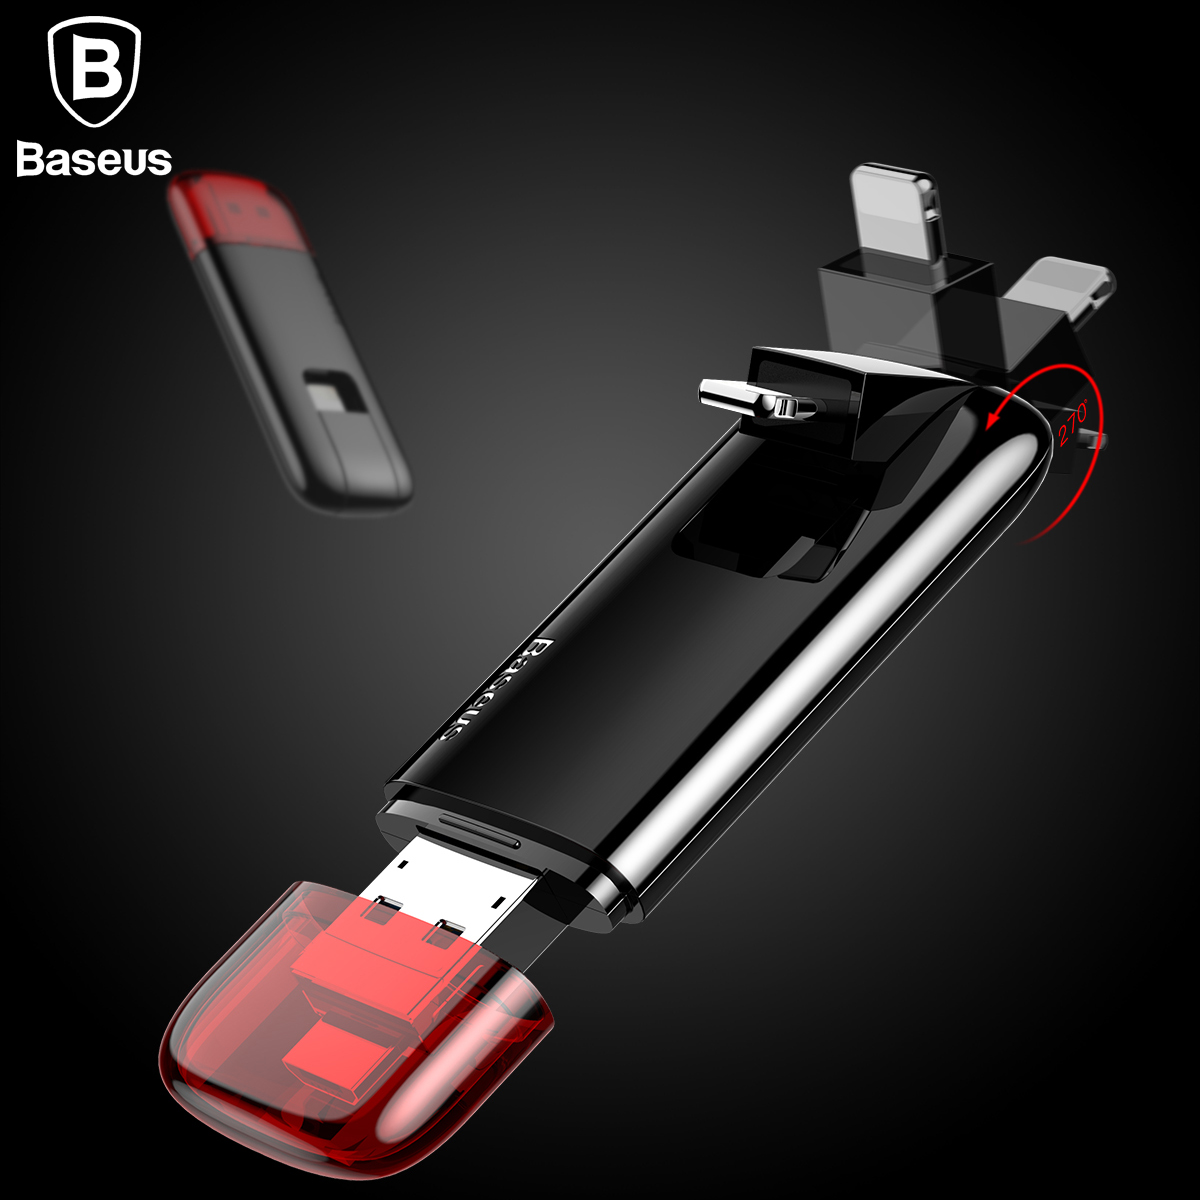 Baseus 3in1 USB Flash Drives For iPhone 5 6 7 8 U Disk Phone Memory Storage Stick 32G 64G Pendrive For Samsung Micro USB U Disk baseus 2in1 mfi certified u disk for iphone 5 6s 7 7s usb flash drive 64g pendrive usb2 0 memory stick phone usb flash u disk